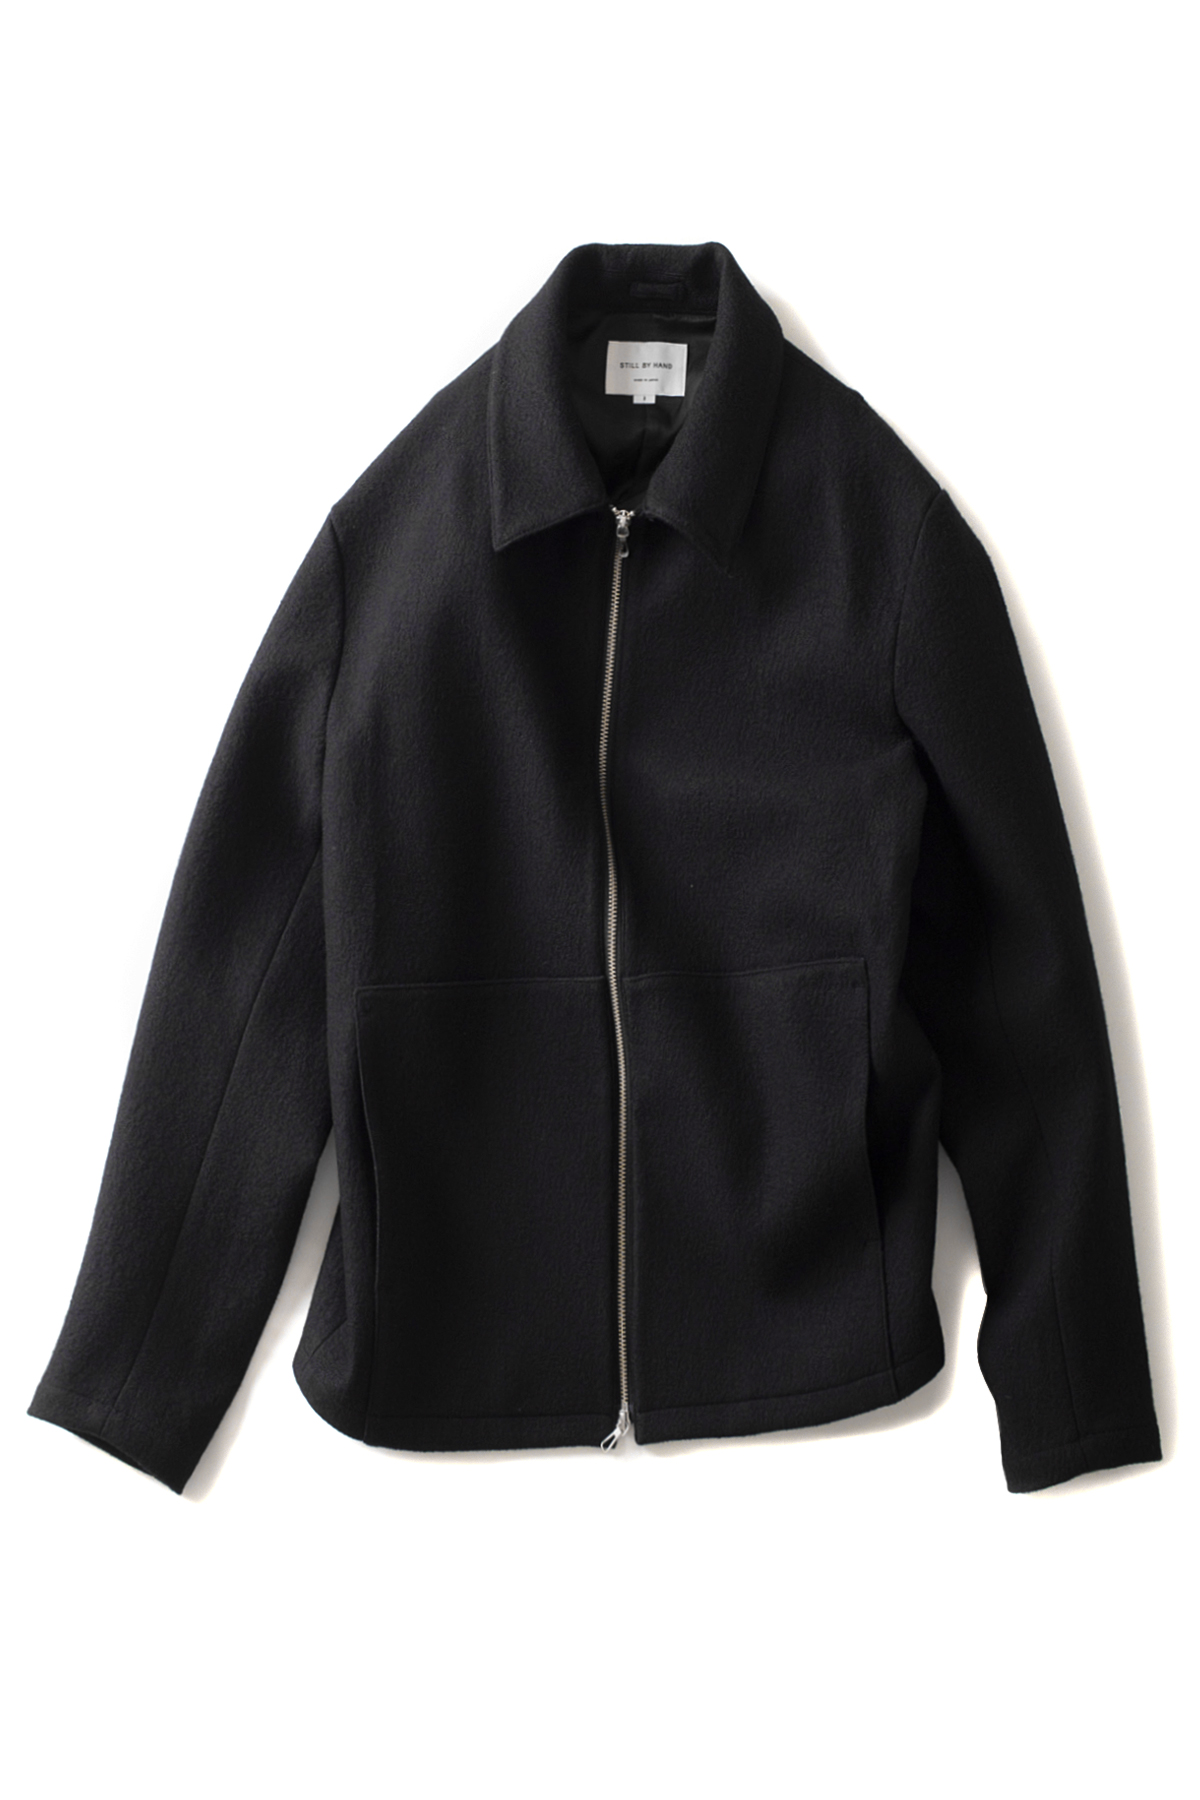 Still by Hand : Loop Yarn Zip-Up Blouson (Black)